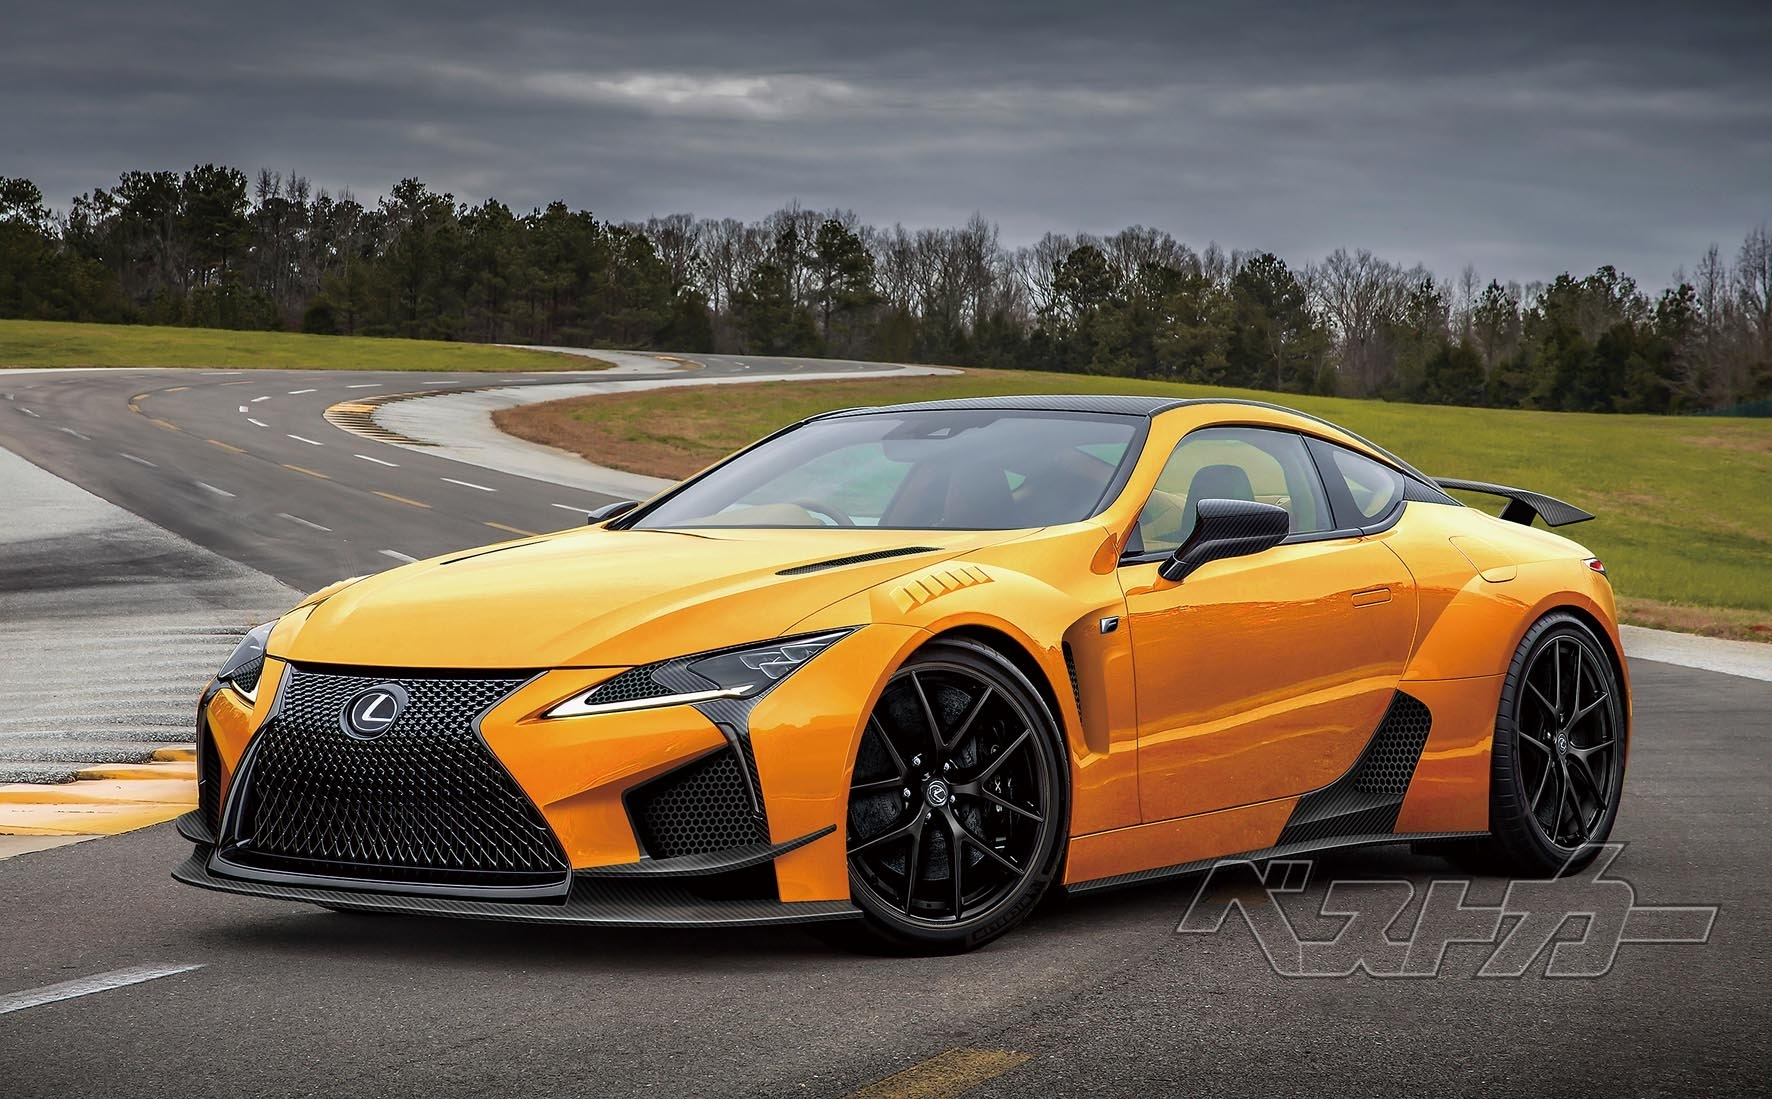 34 All New 2019 Lexus Lf Lc History